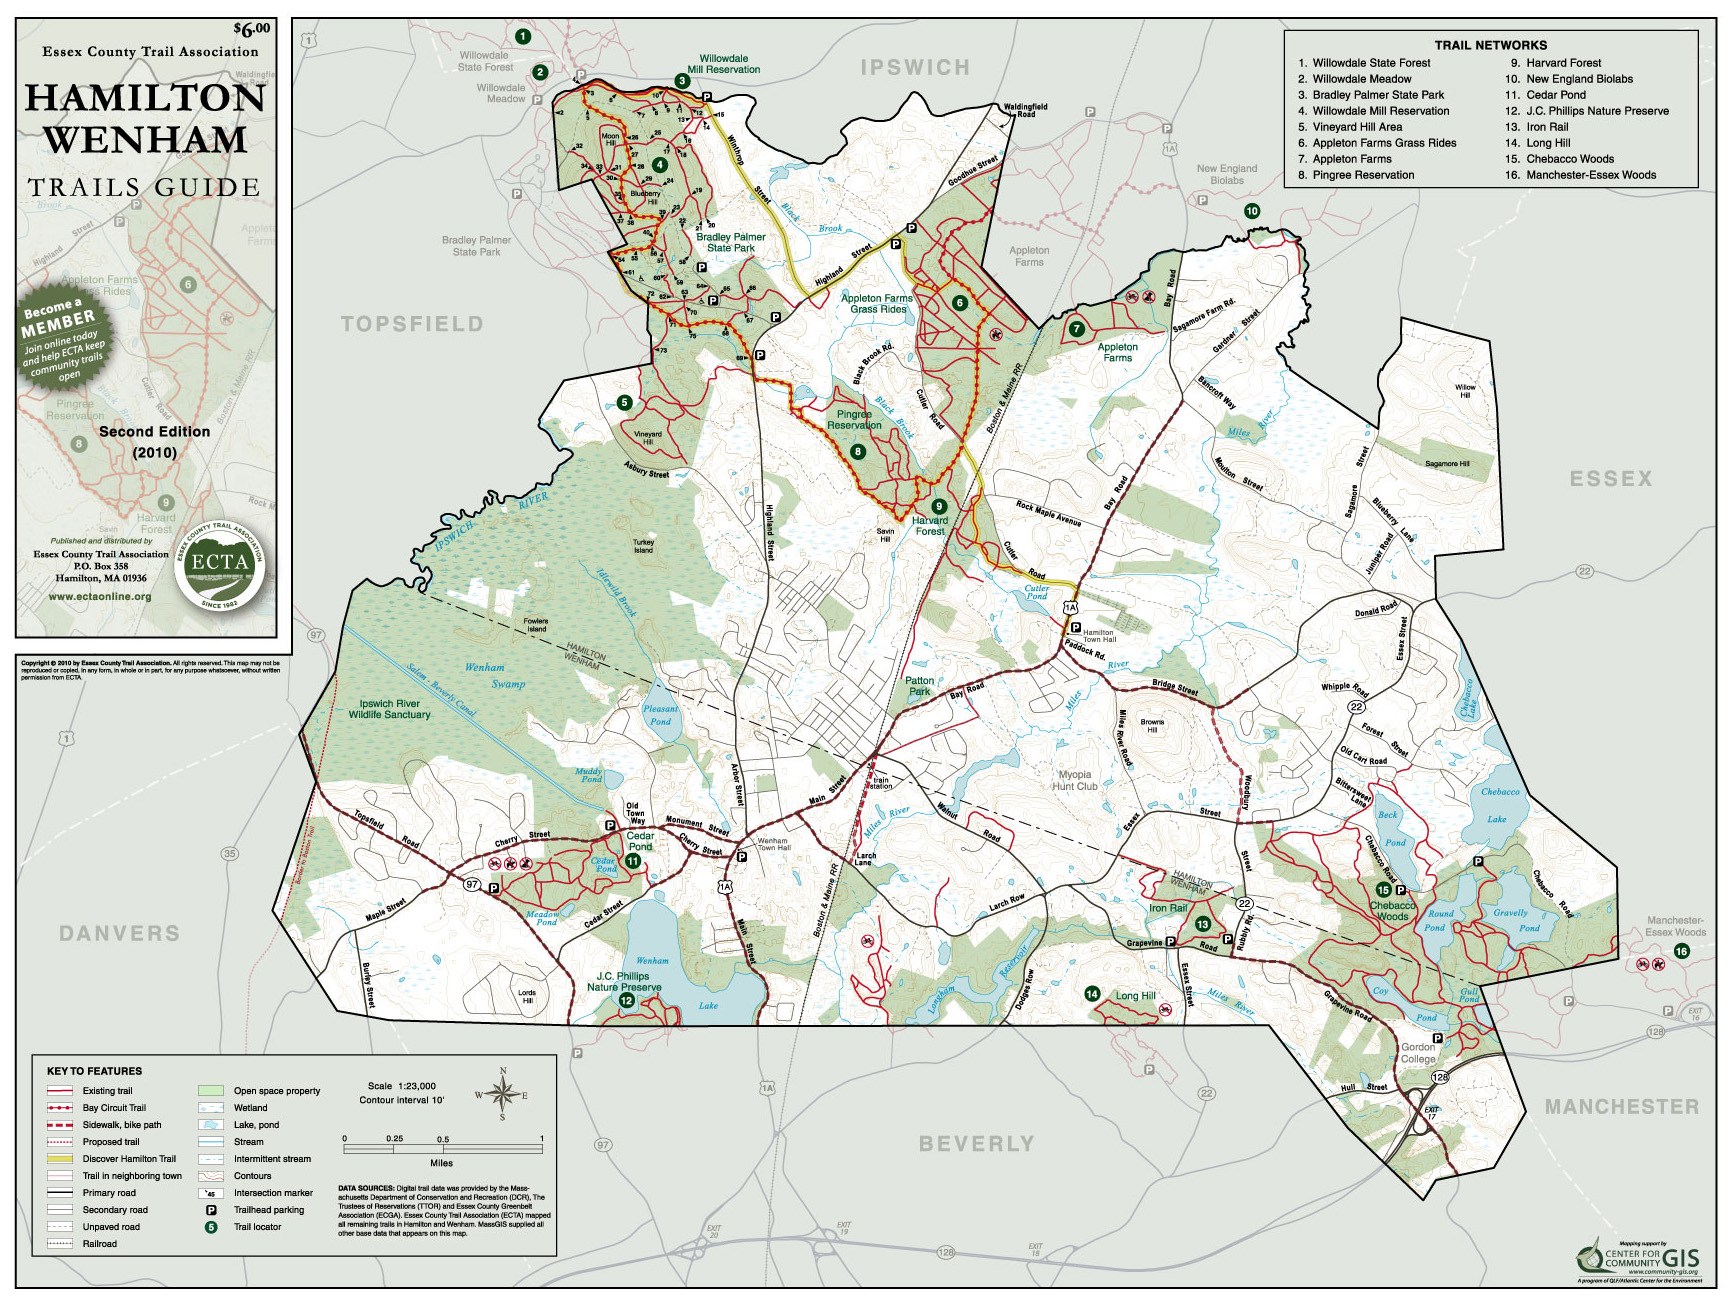 Buy an ECTA Trail Map Essex County Trail Association